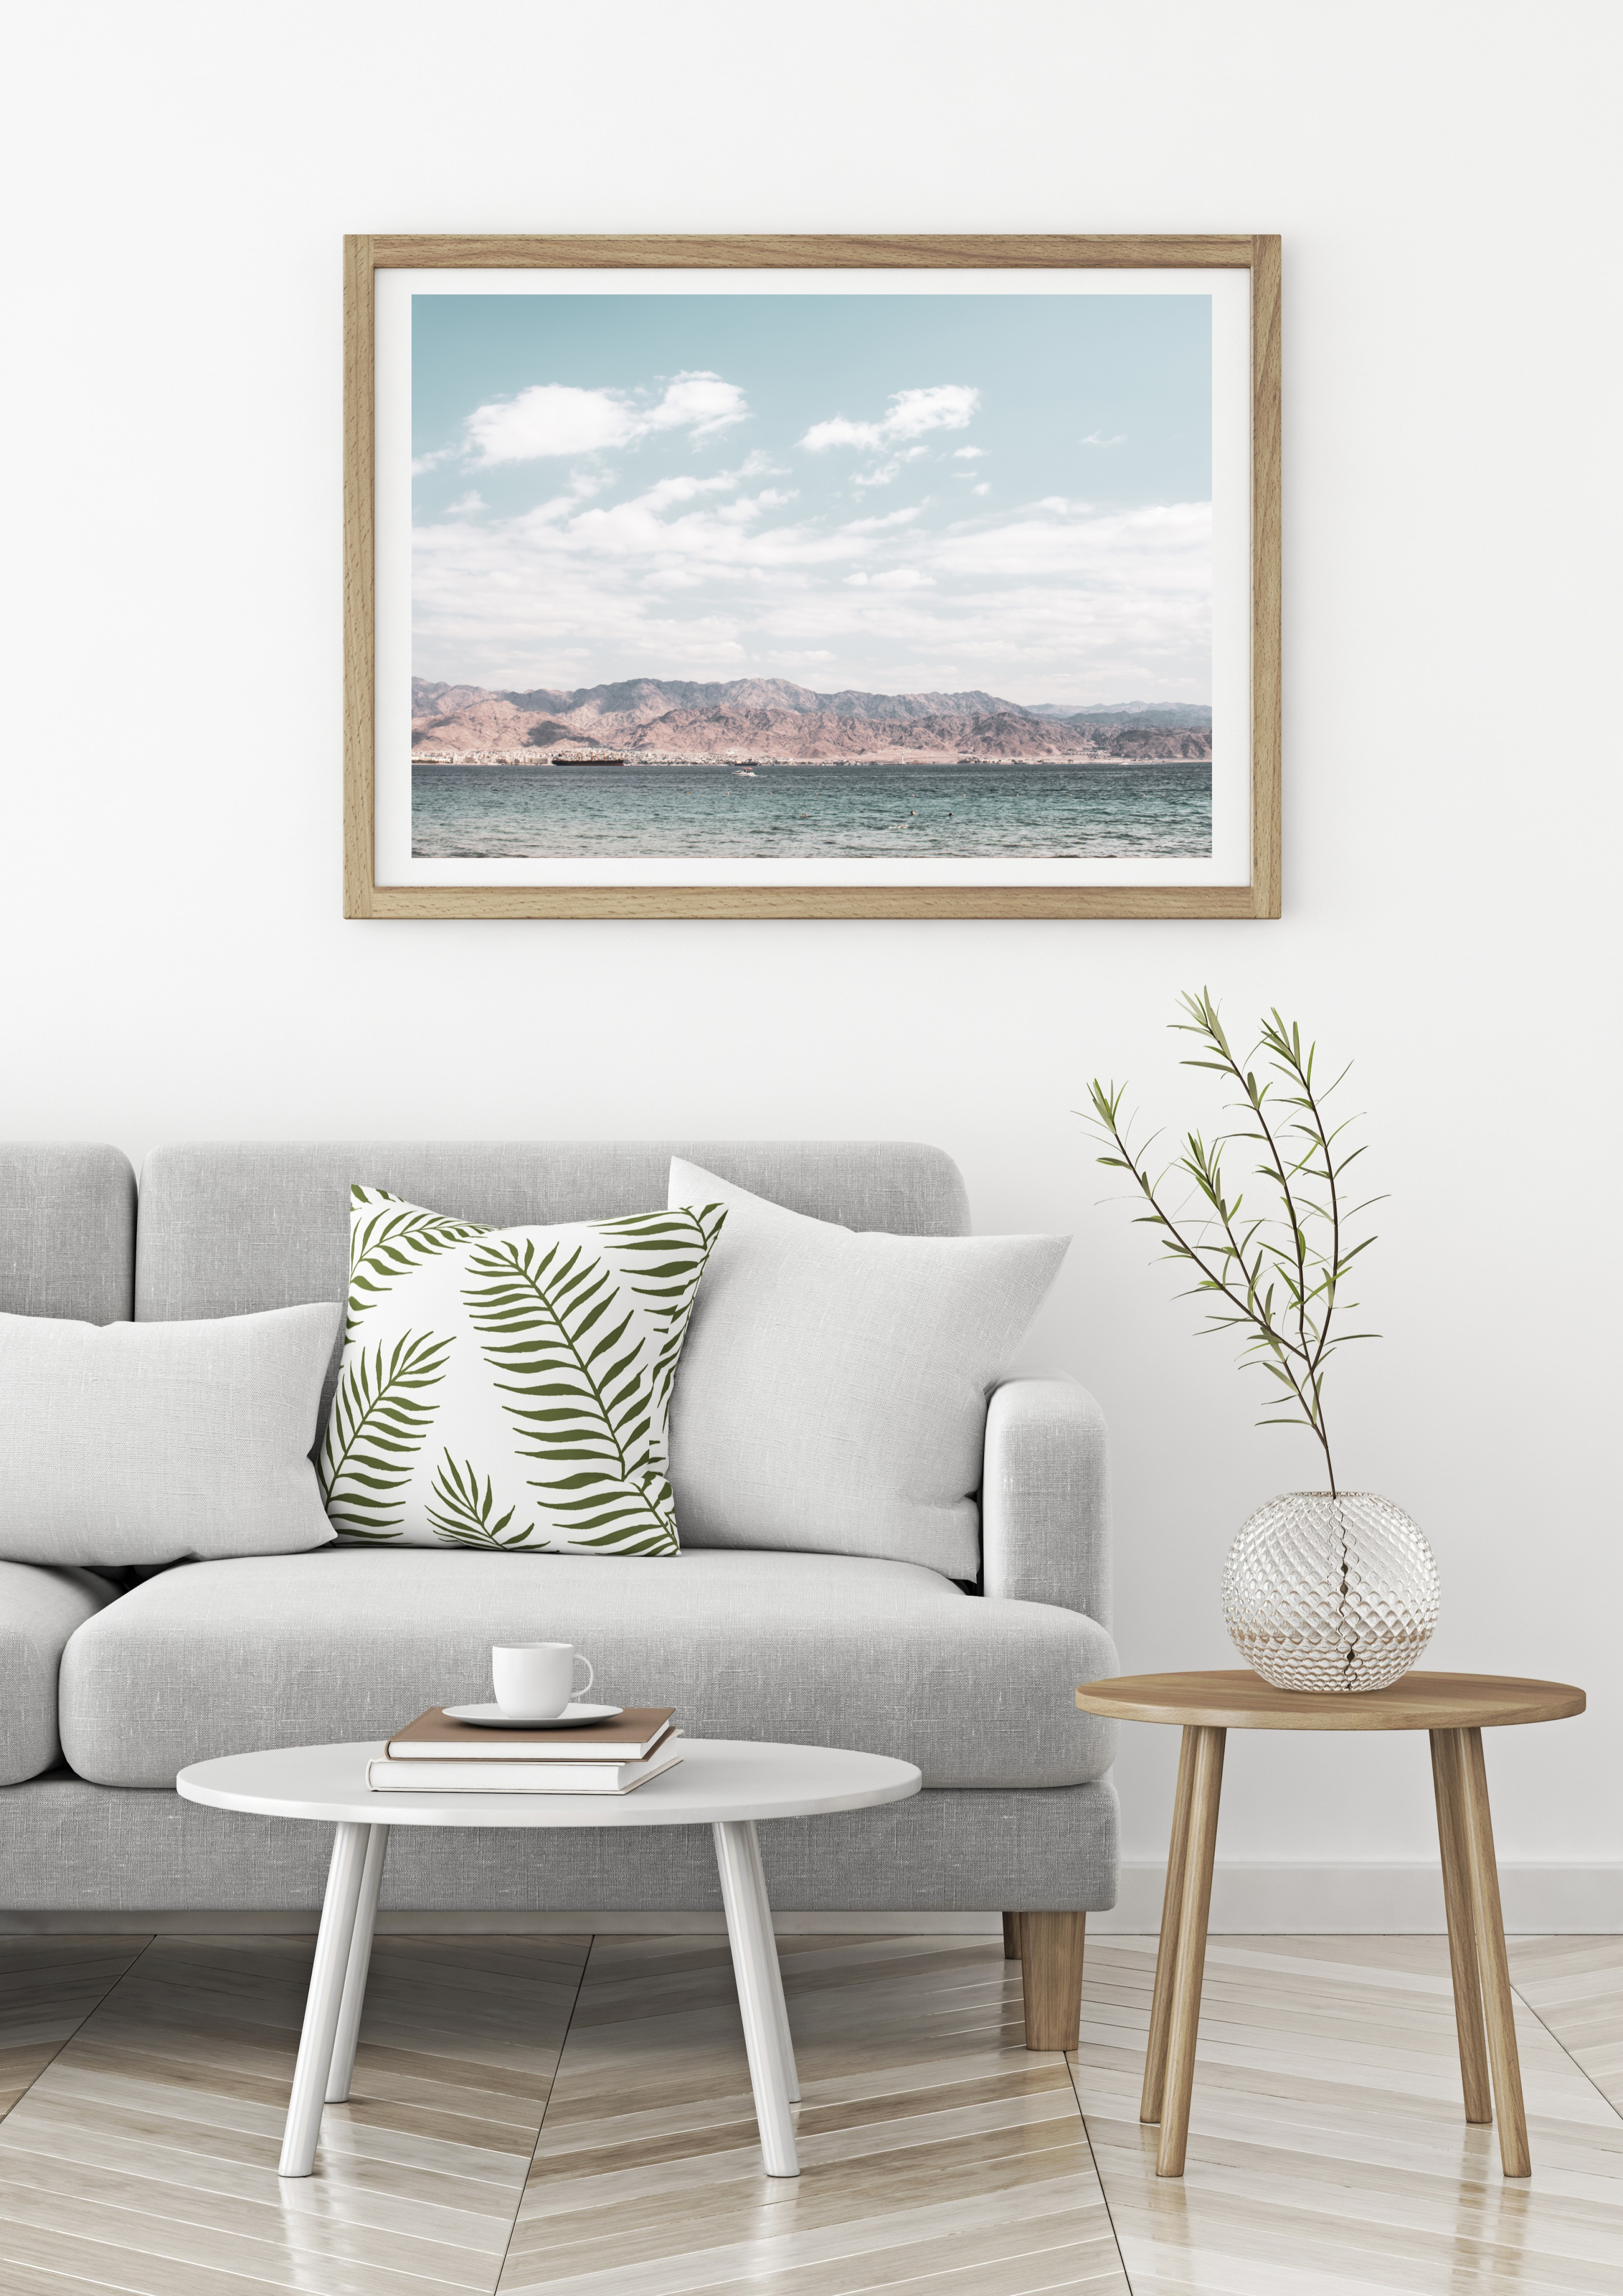 eilat mountains wall print